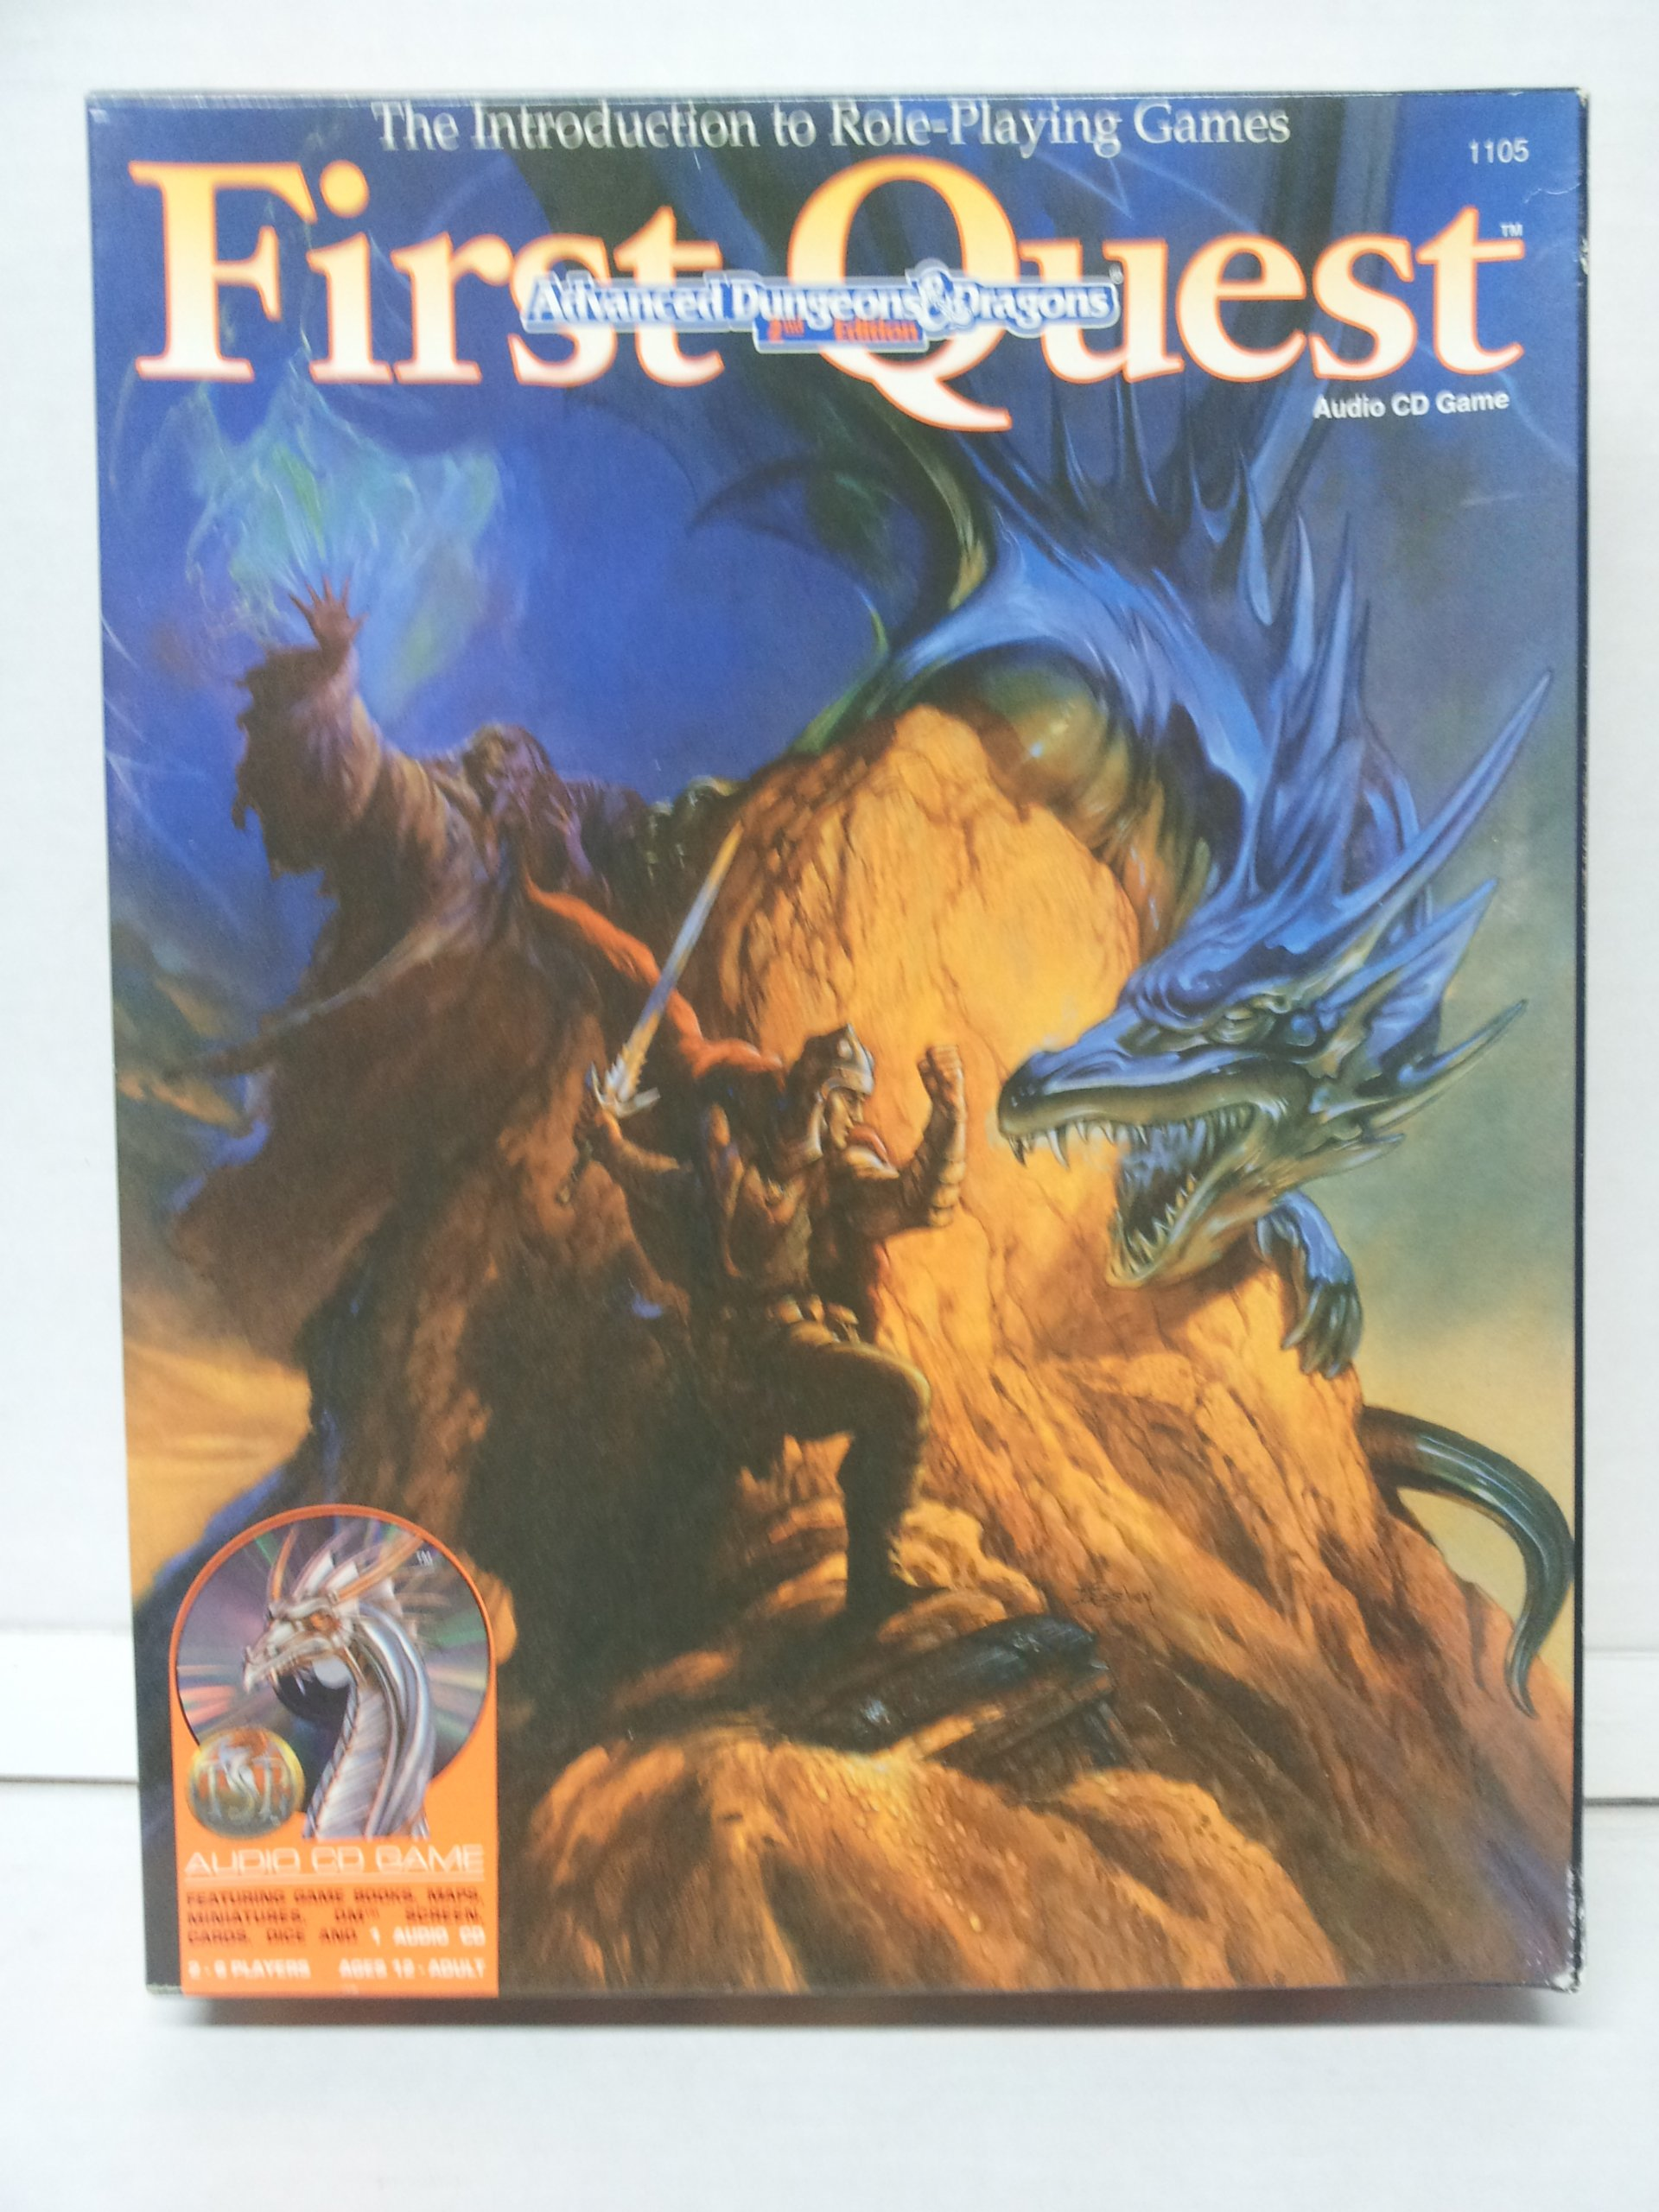 First Quest/Audio Cd Game (Advanced Dungeons & Dragons 2nd Edition) by Wizards of the Coast